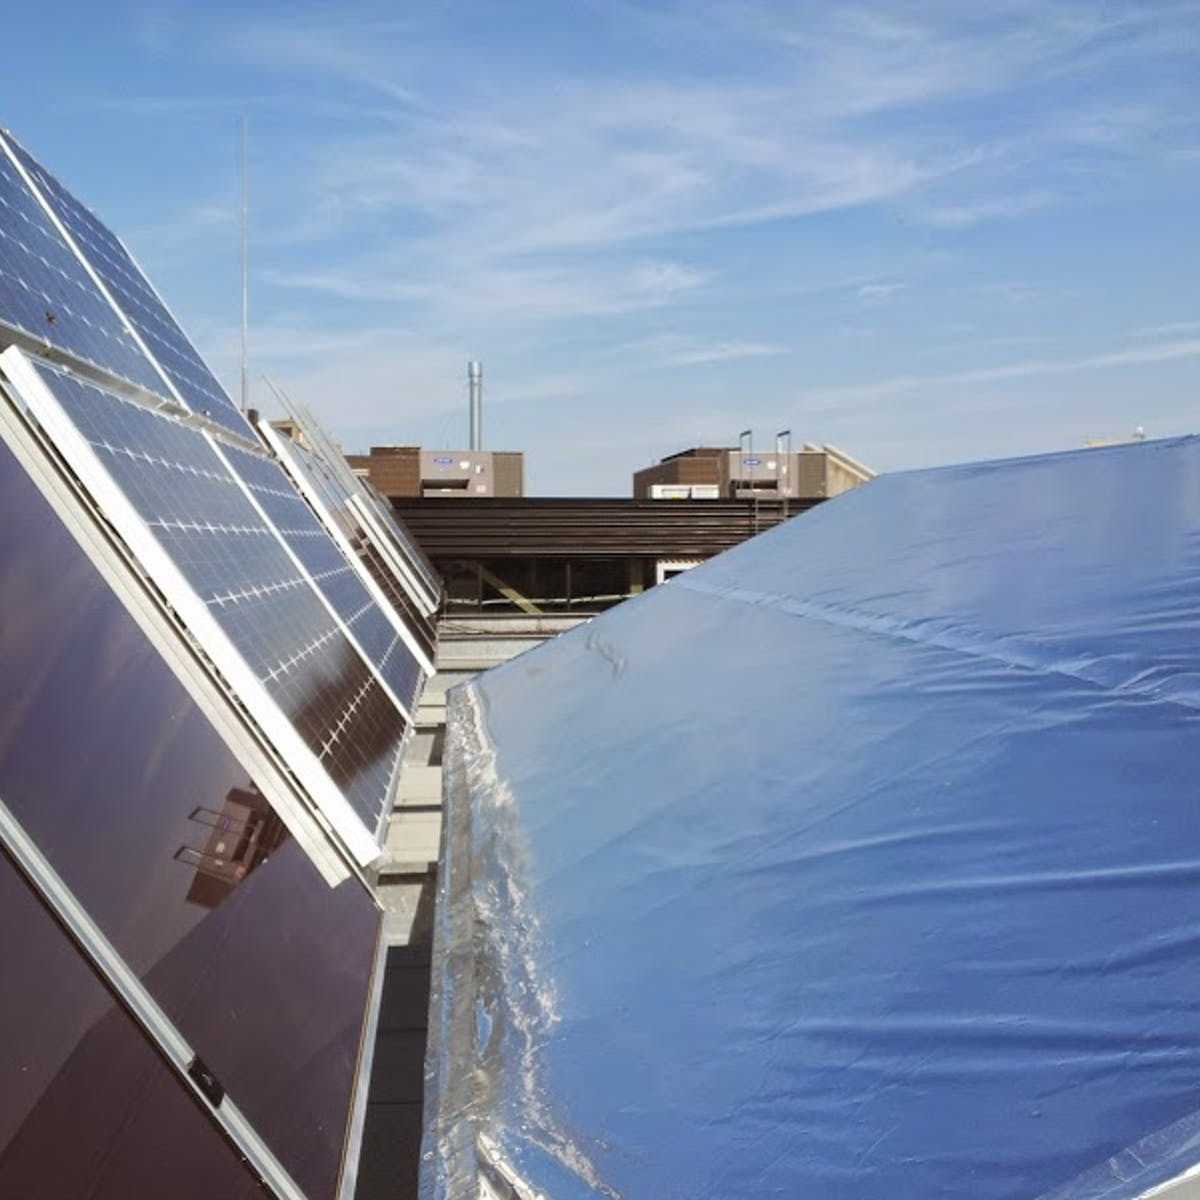 Can mirrors boost solar panel output - and help overcome Trump's